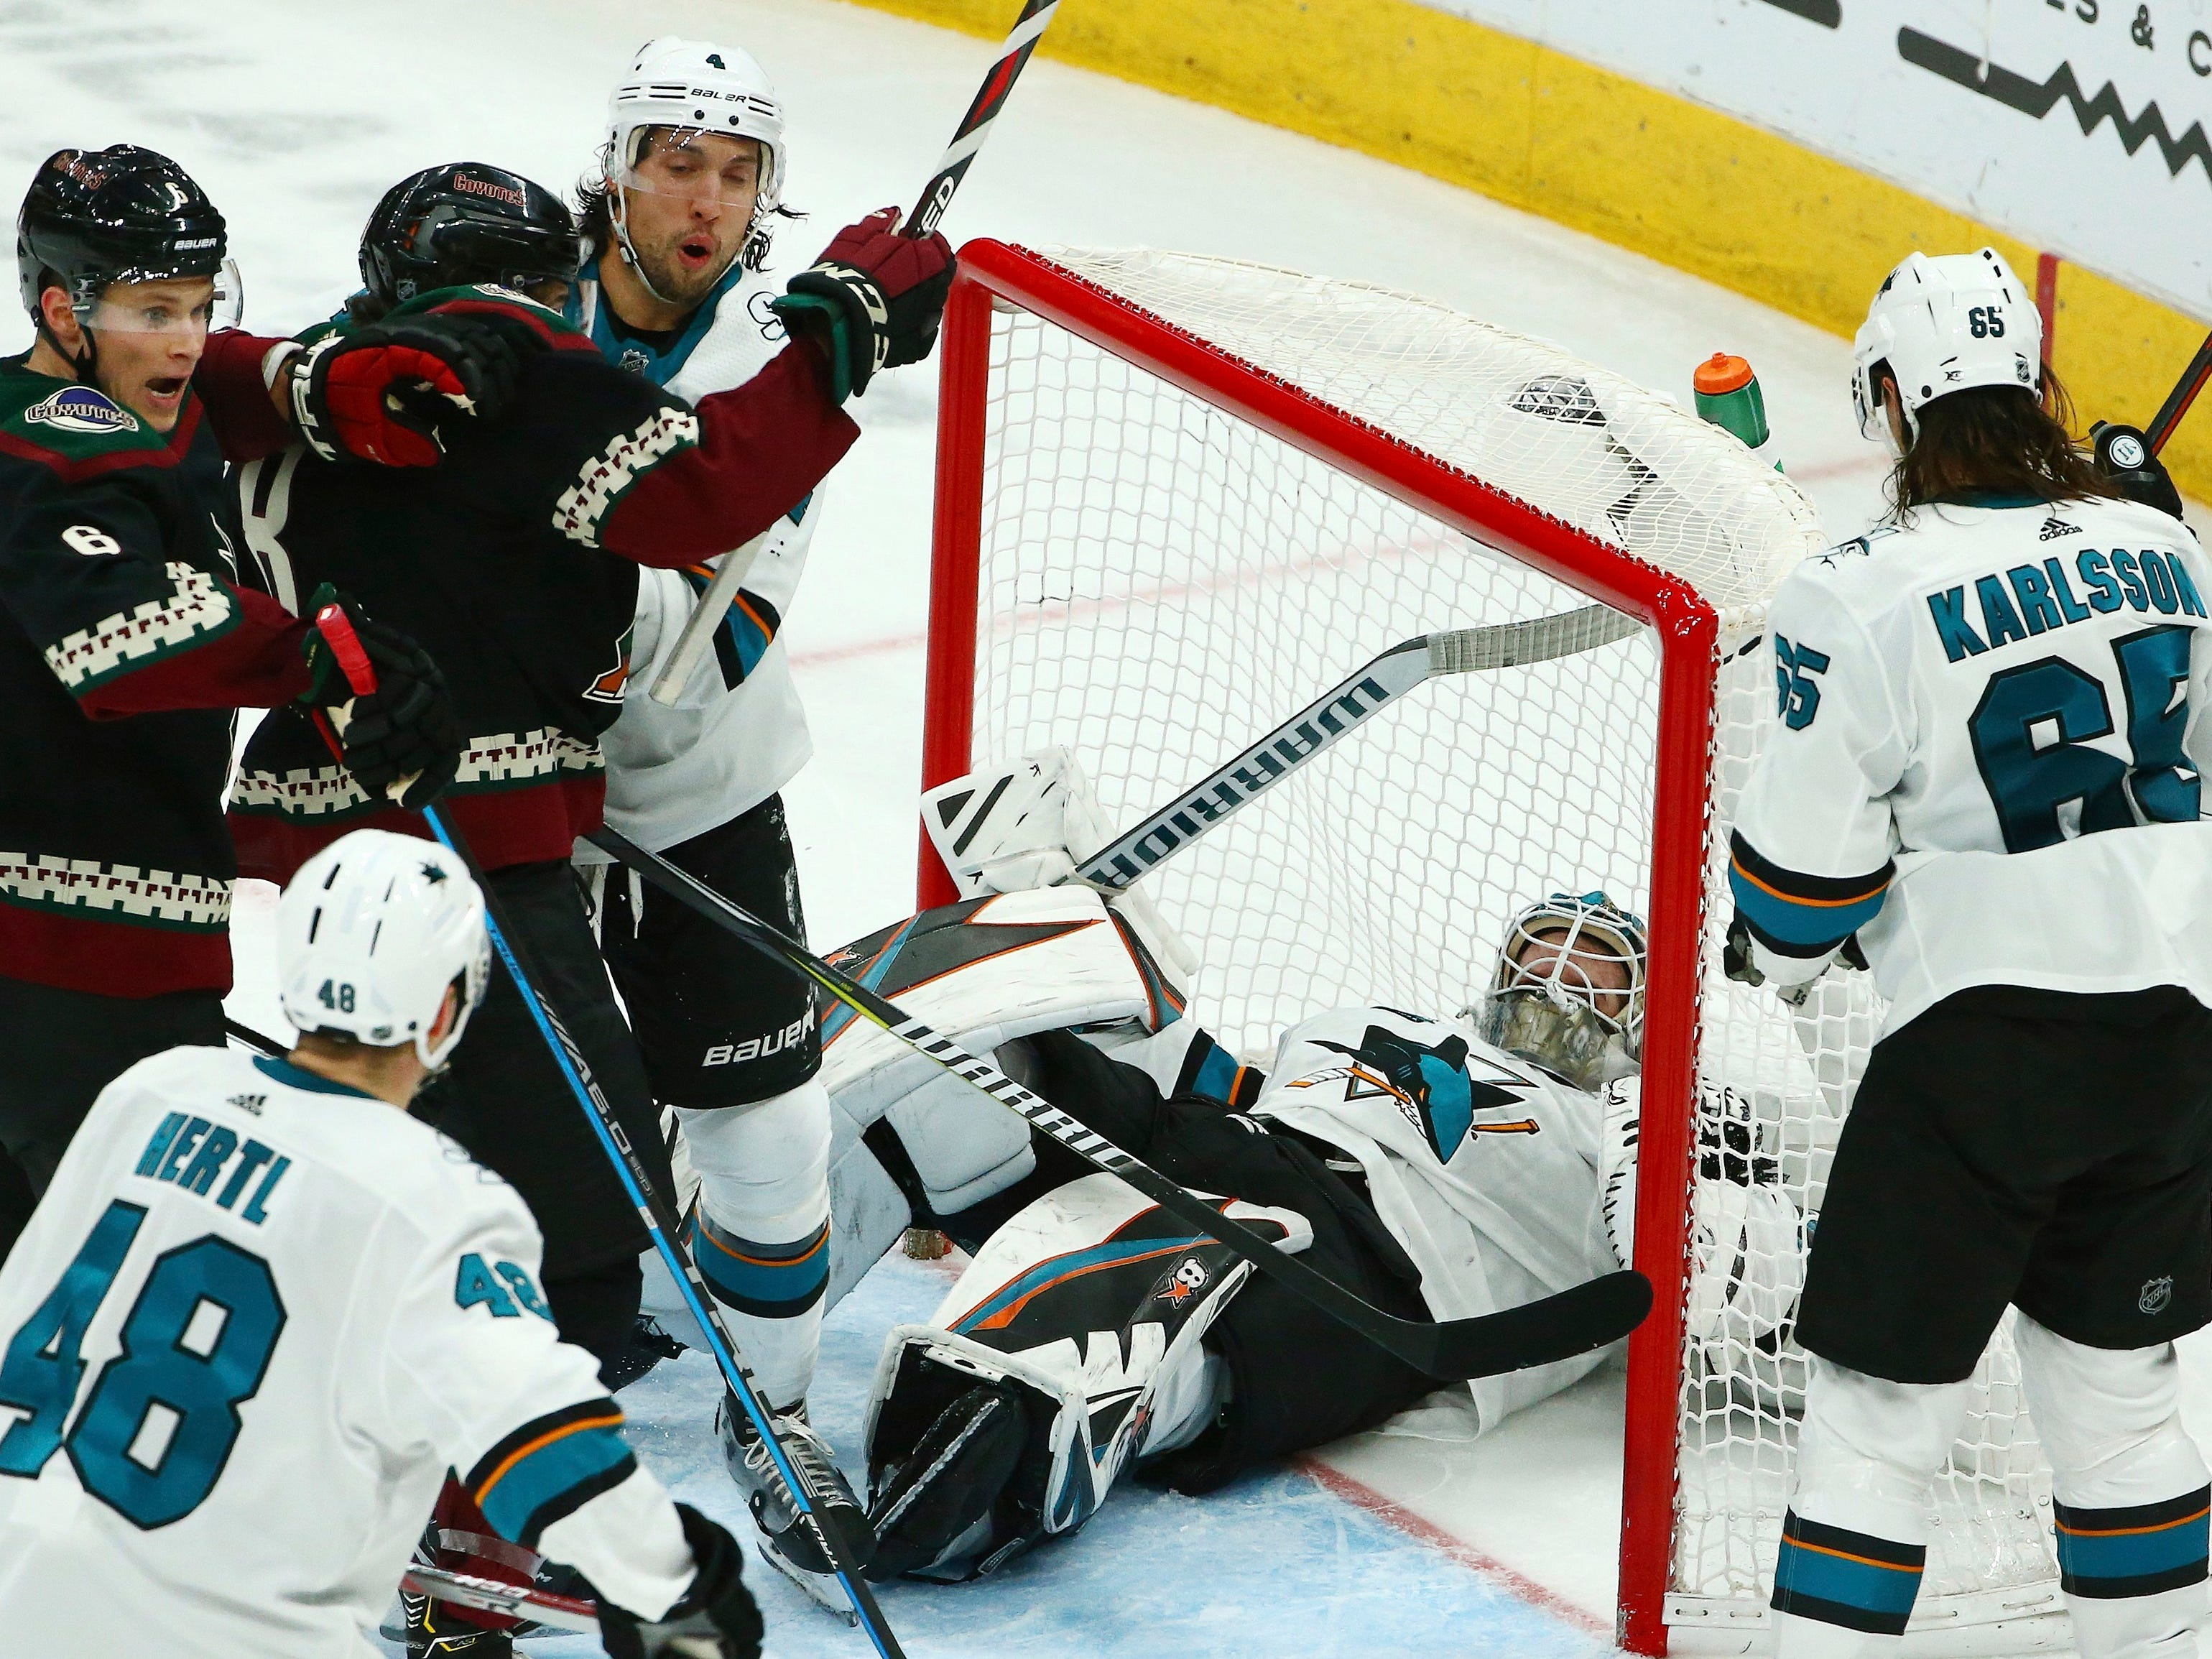 San Jose Sharks goaltender Aaron Dell, middle, makes a save on a shot as Arizona Coyotes defenseman Jakob Chychrun (6) and Coyotes center Nick Schmaltz (8) battle with San Jose Sharks defenseman Brenden Dillon (4) while Sharks center Tomas Hertl (48) and Sharks defenseman Erik Karlsson (65) look on during the third period of an NHL hockey game, Saturday, Dec. 8, 2018, in Phoenix. The Sharks defeated the Coyotes 5-3.